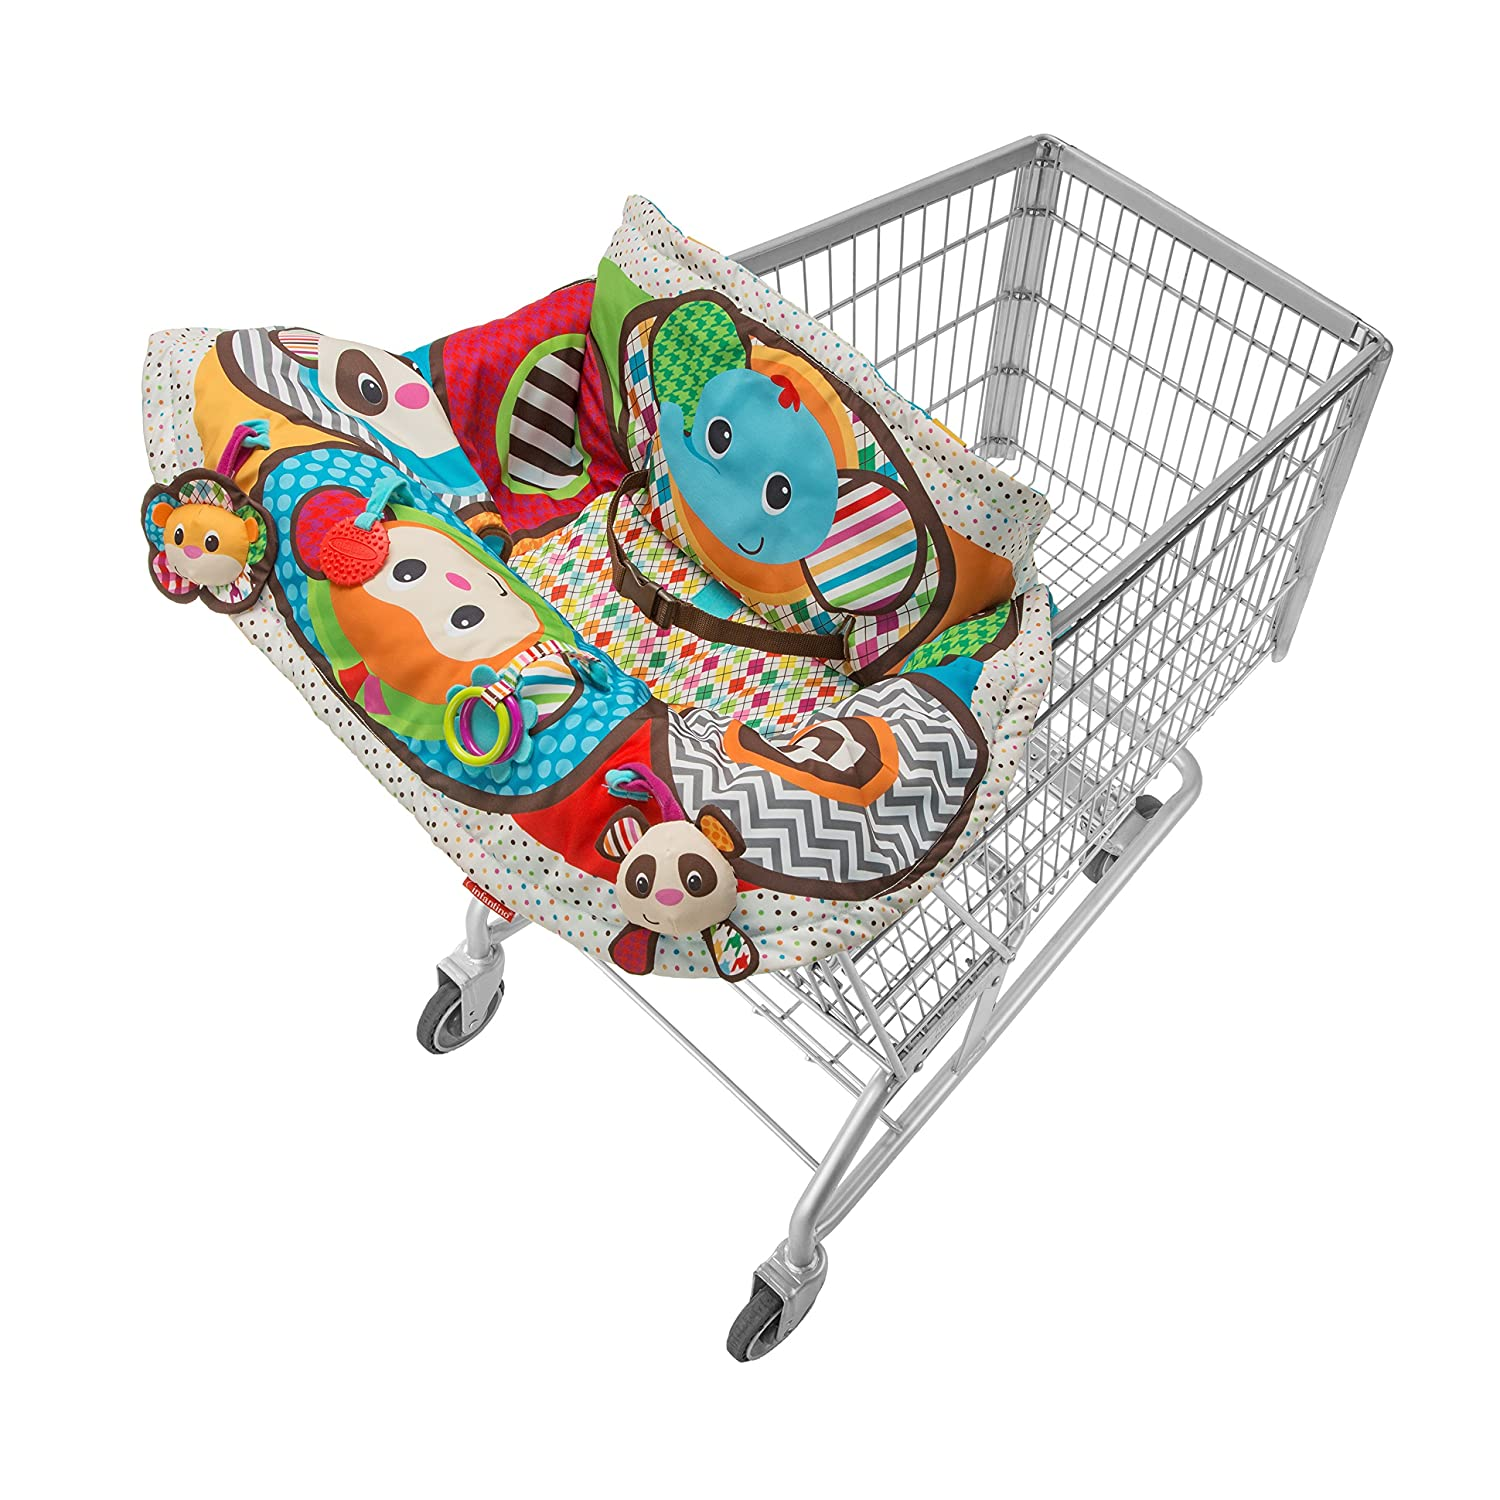 shopping cart cover baby infant activity play center toy high